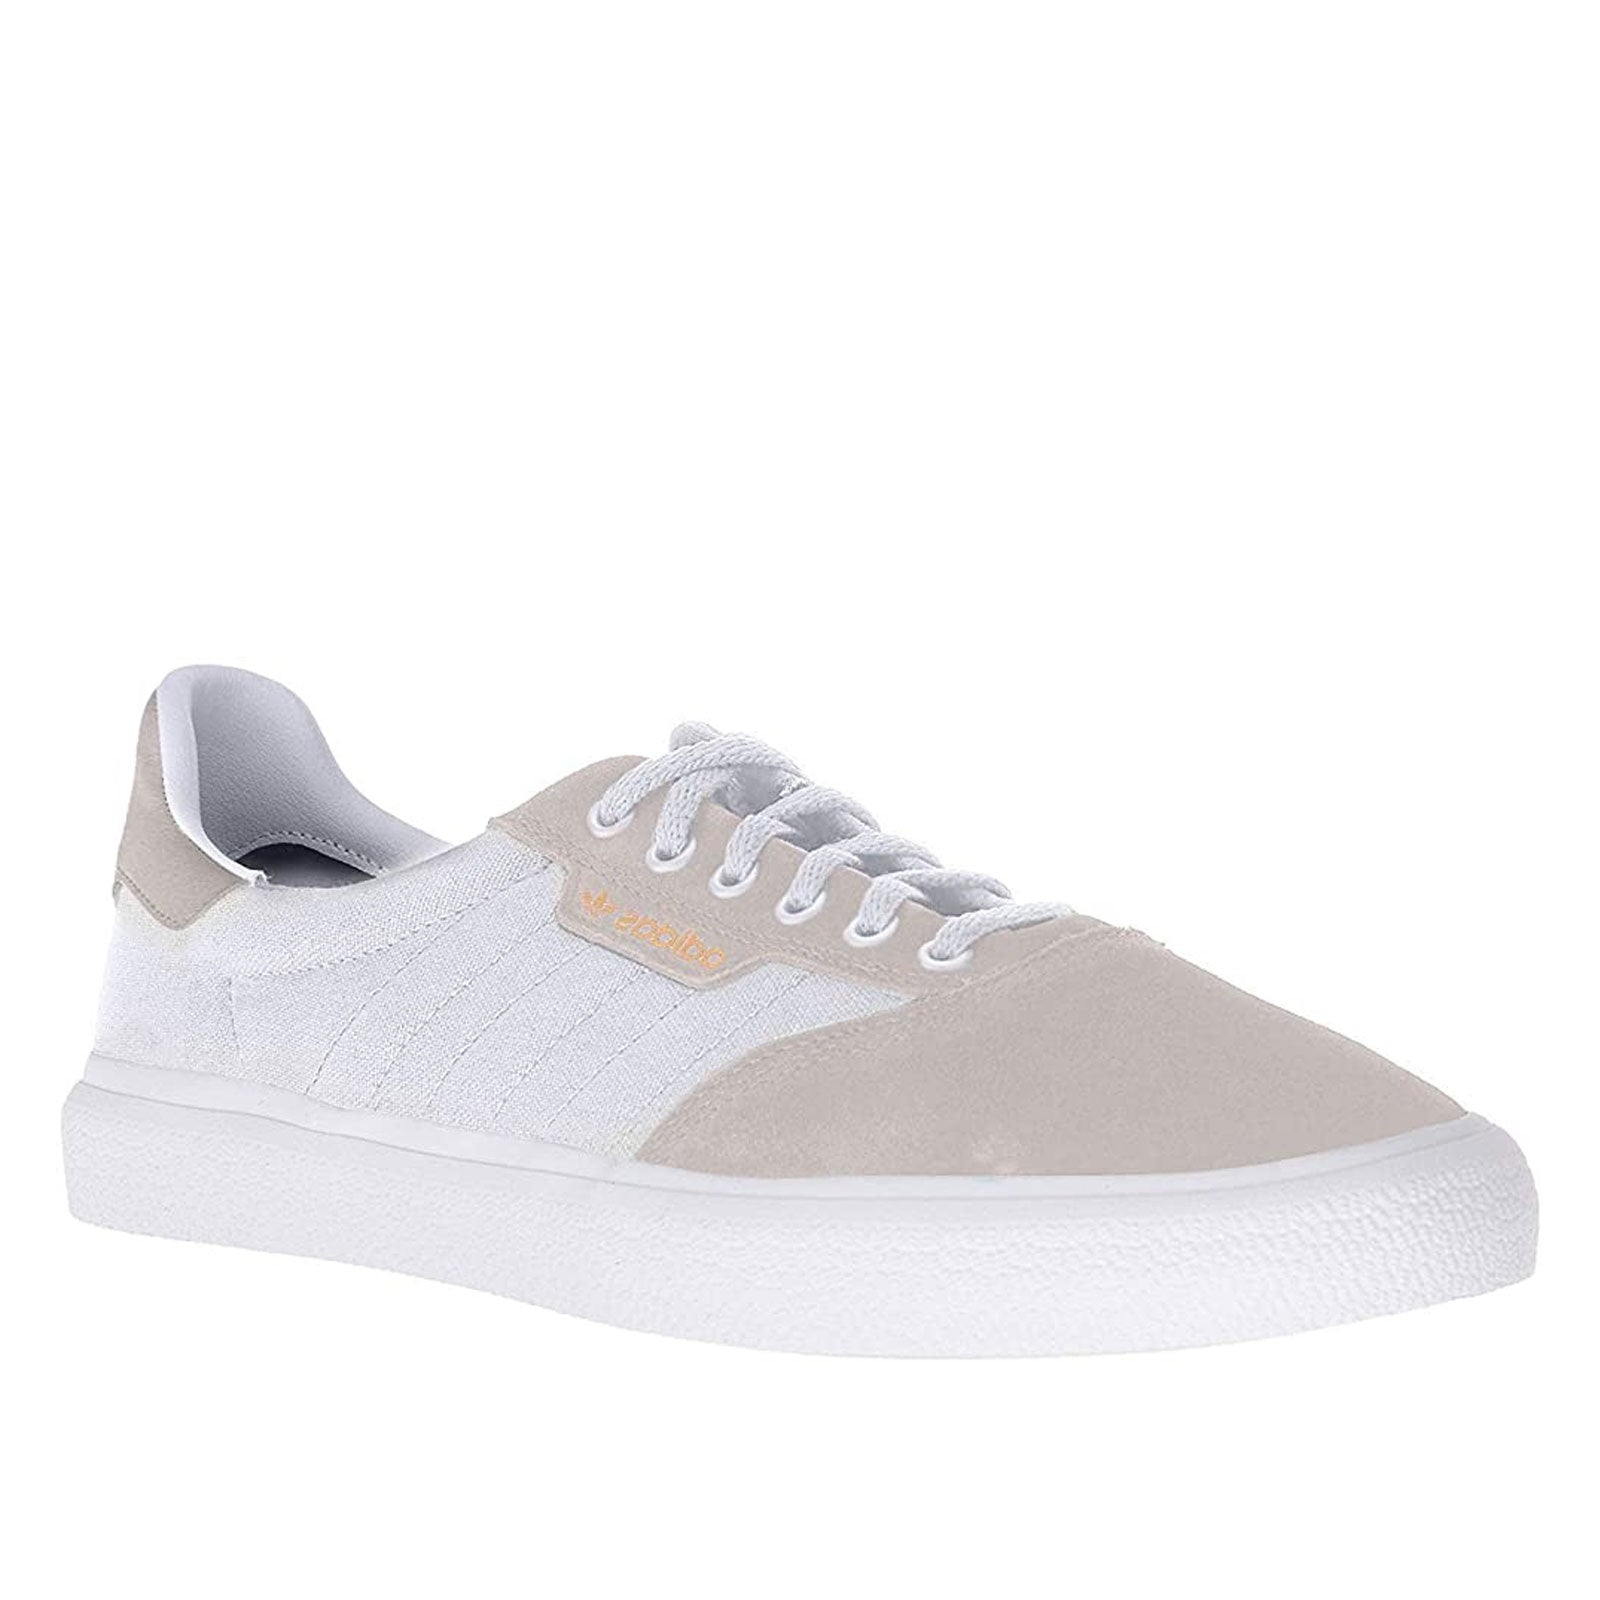 Adidas Originals 3MC Vulc  G27220 (Cloud White / Crystal White / Gold Metallic)